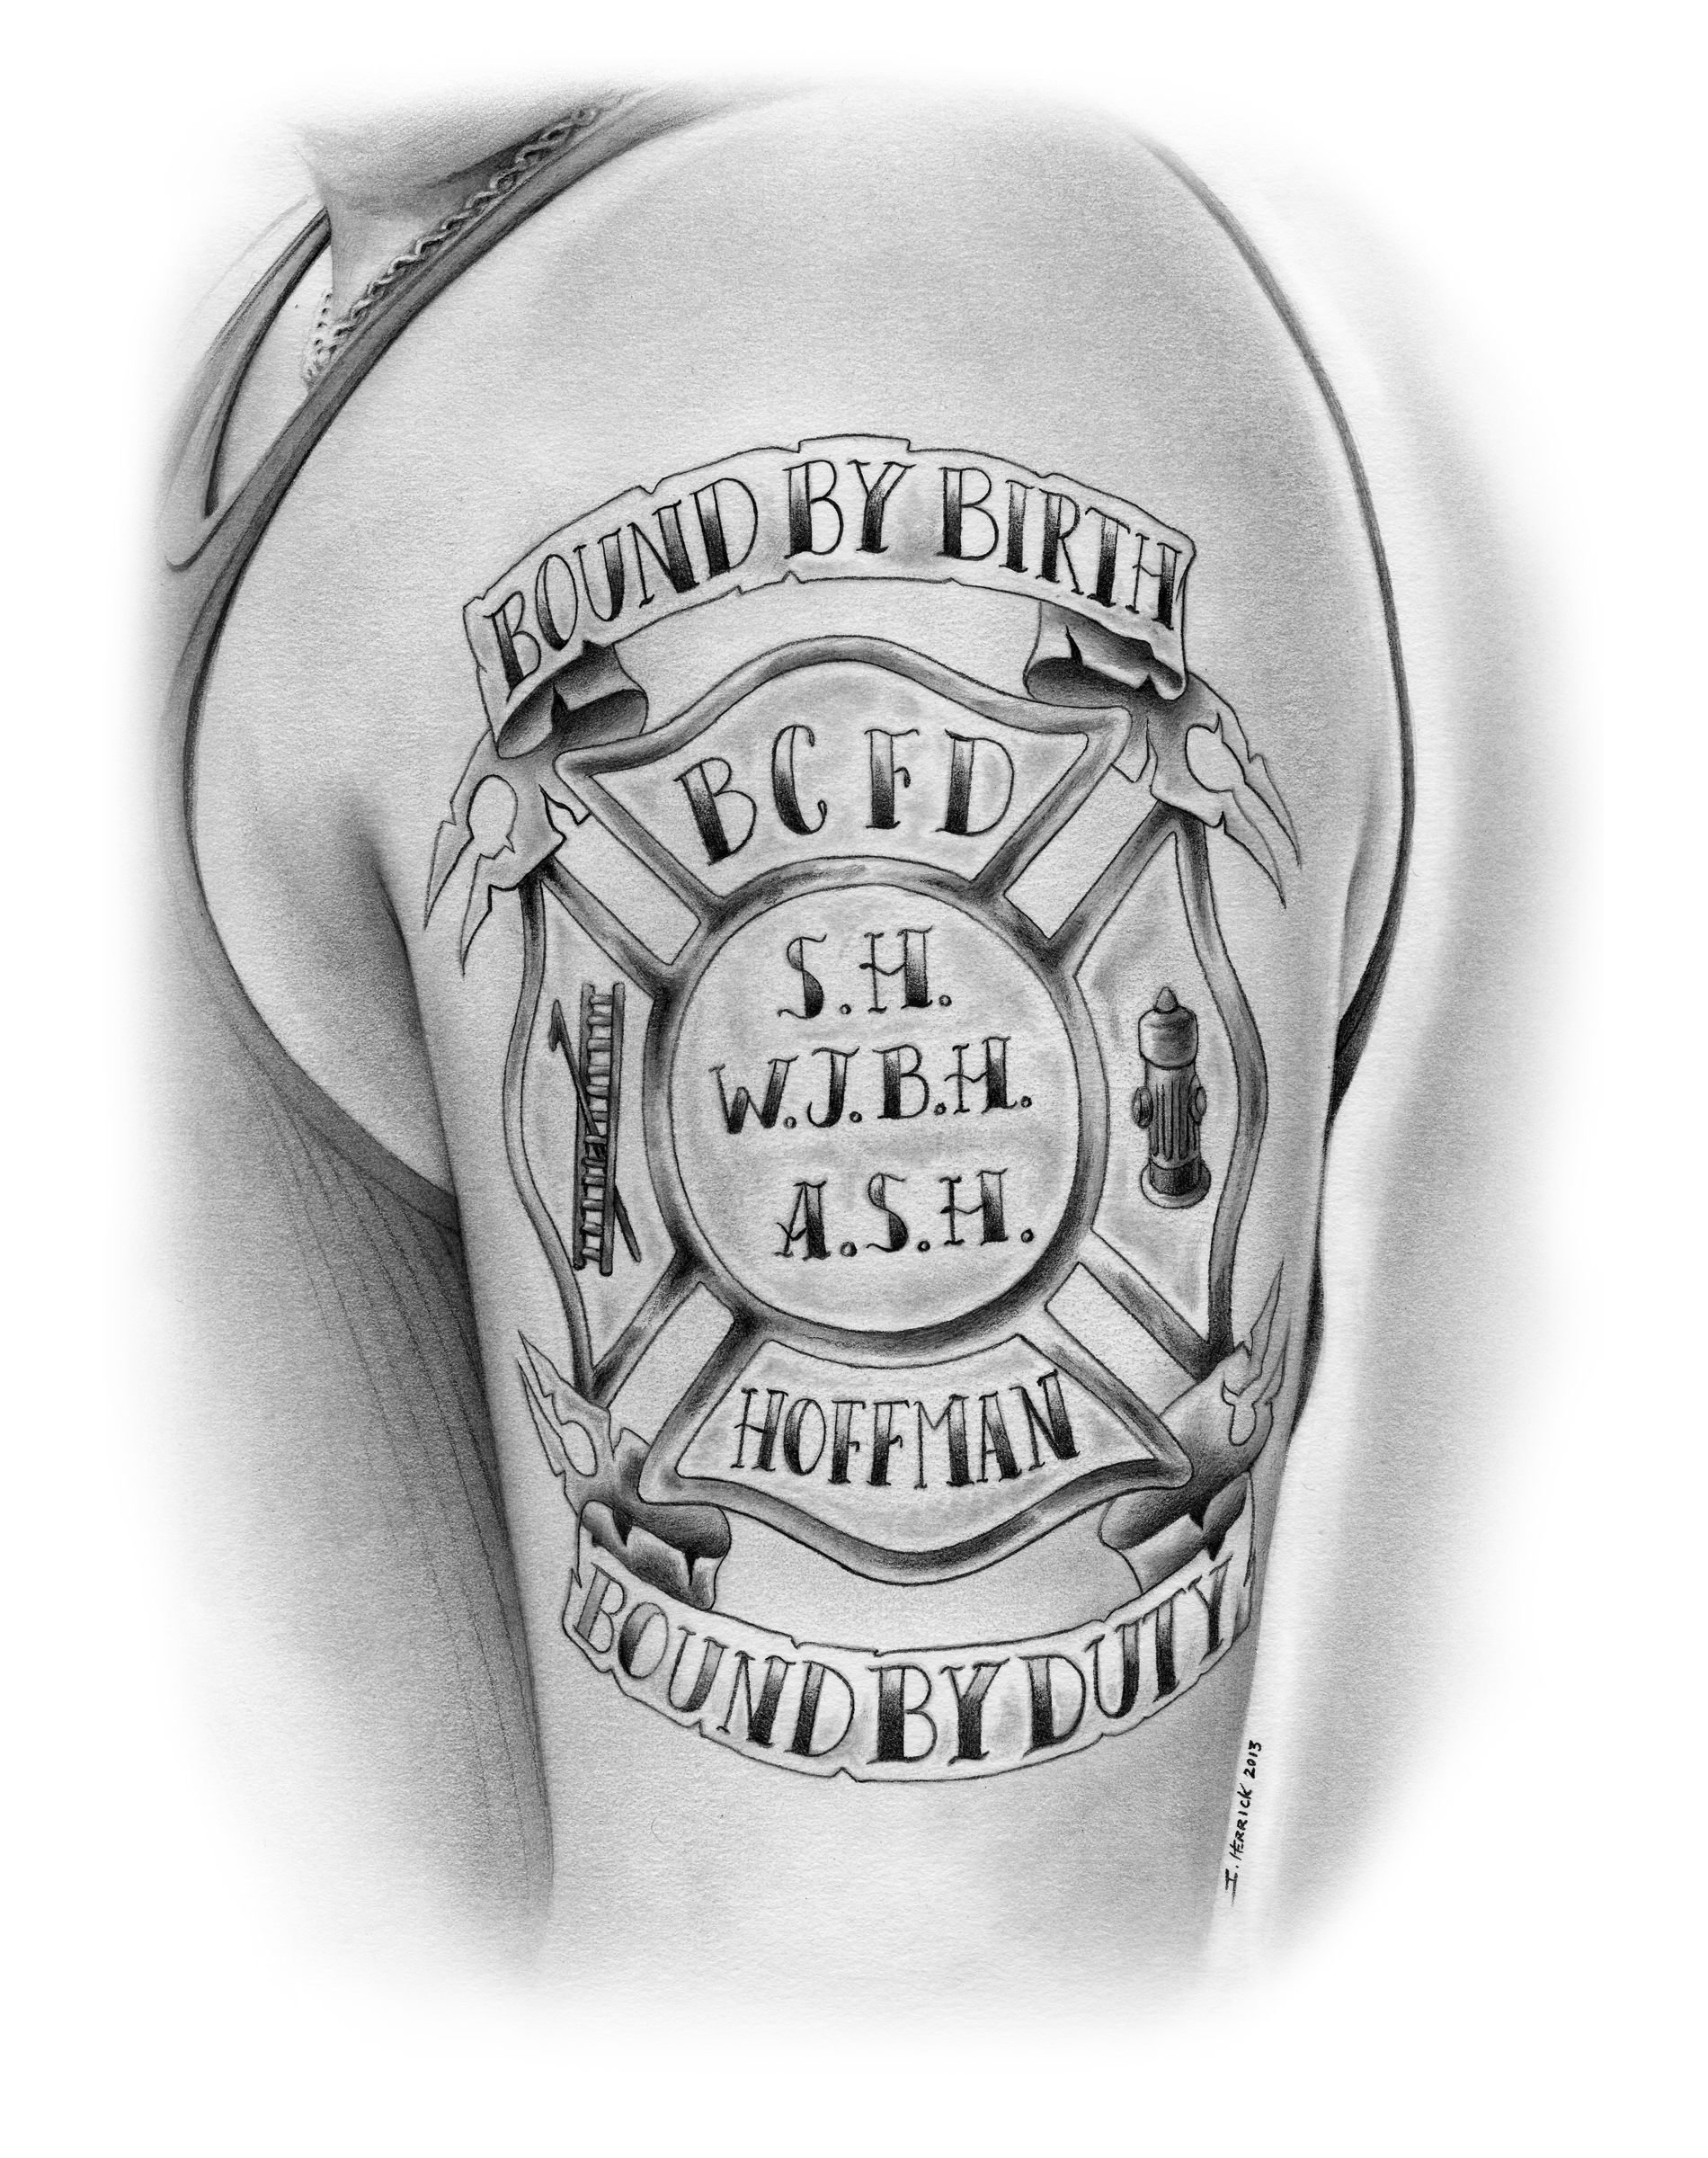 Dearly departed Andy's tattoo